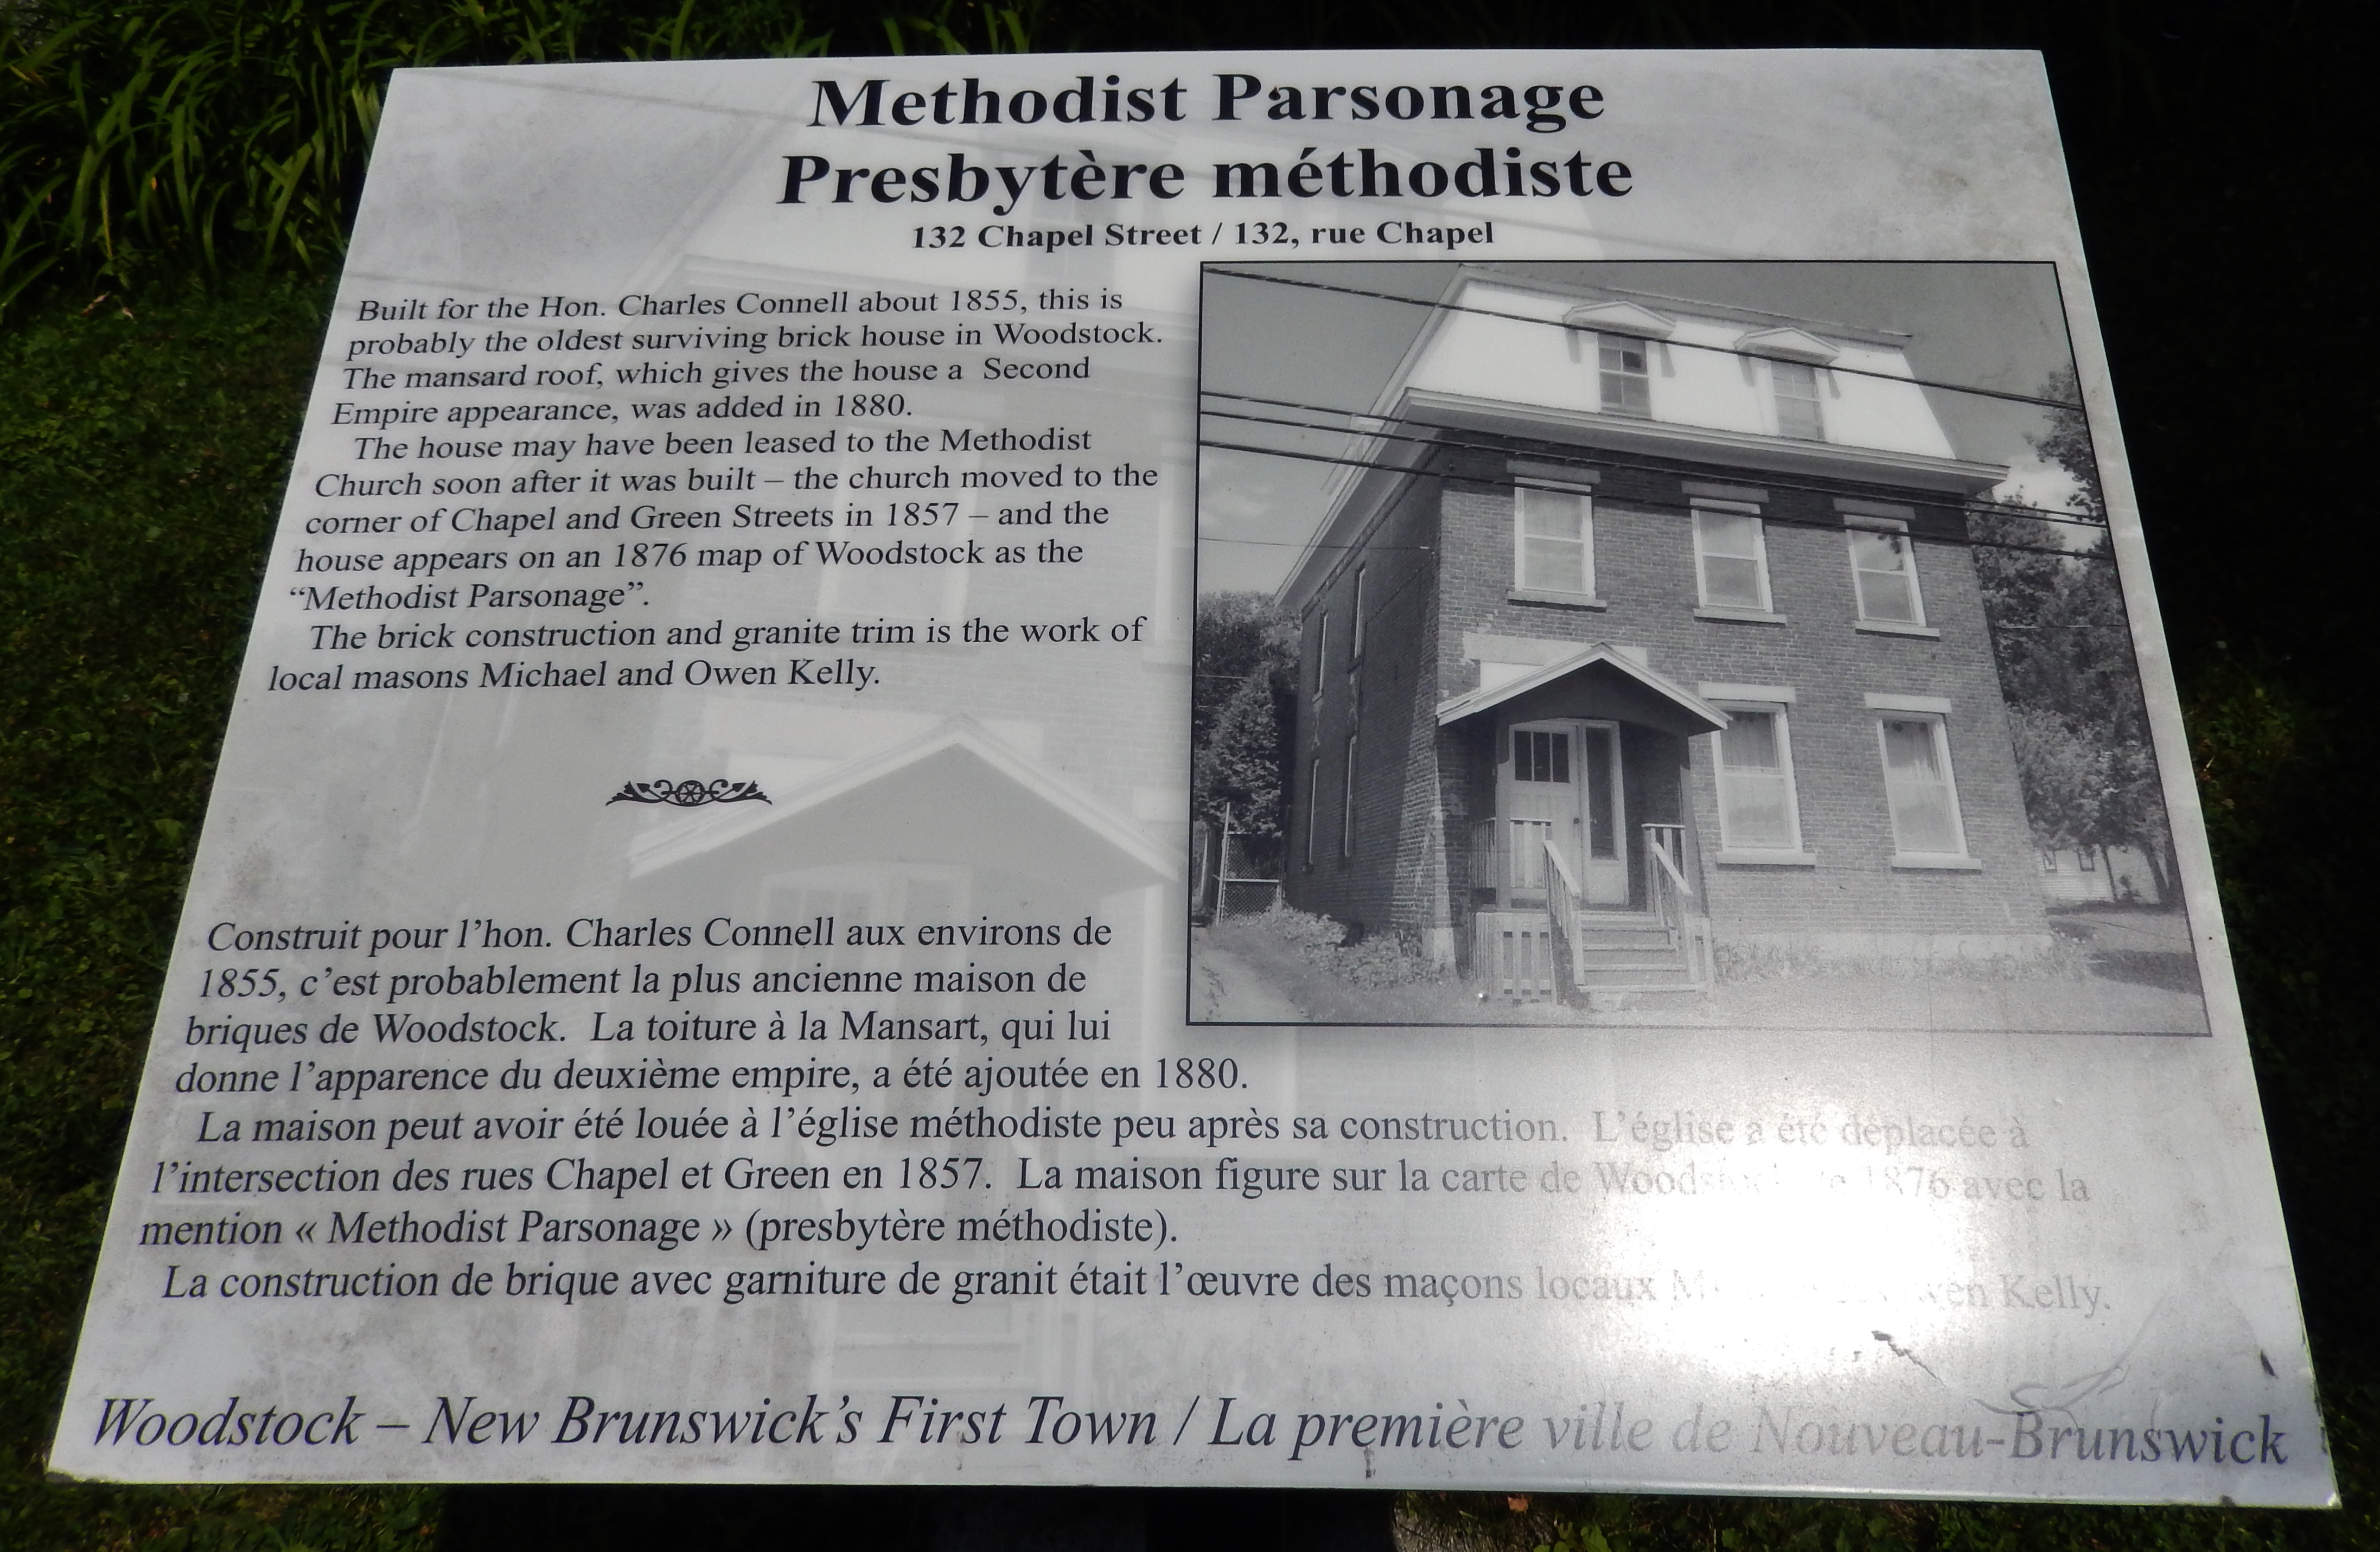 Methodist Parsonage / Presbytère méthodiste Marker